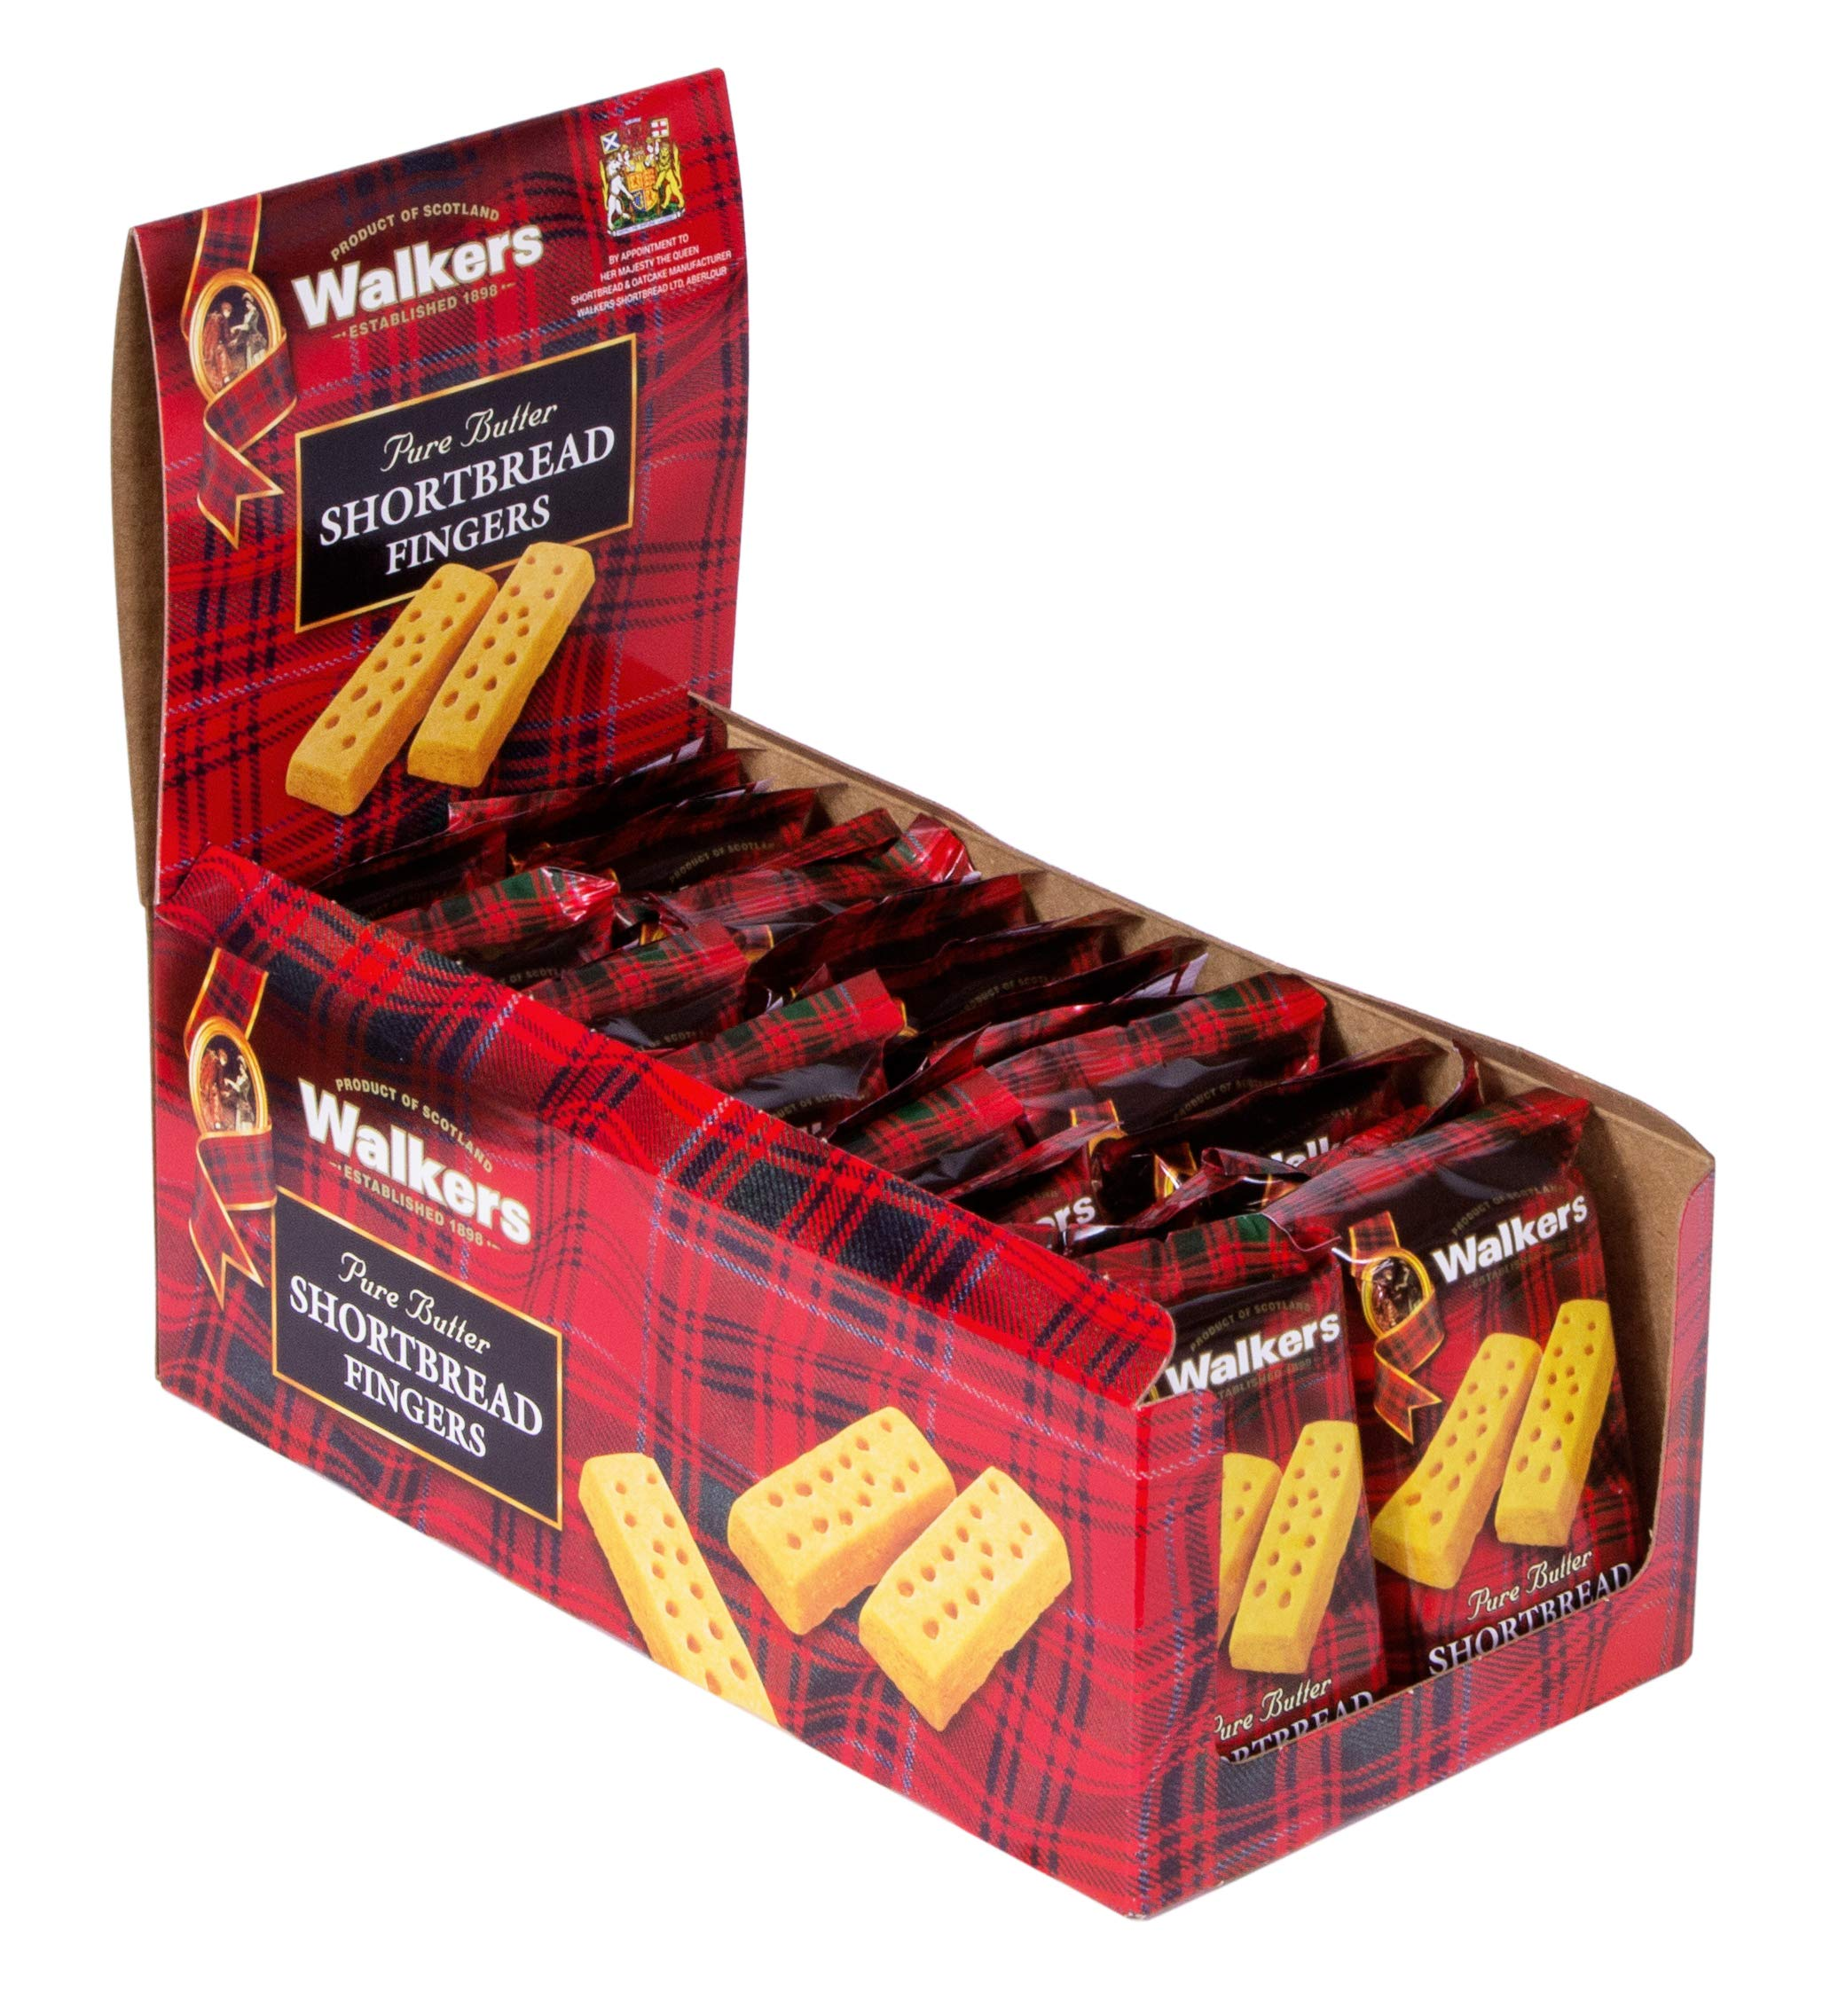 Walkers Shortbread Fingers, Traditional Butter Shortbread Cookies, 2 Count (Pack of 24)